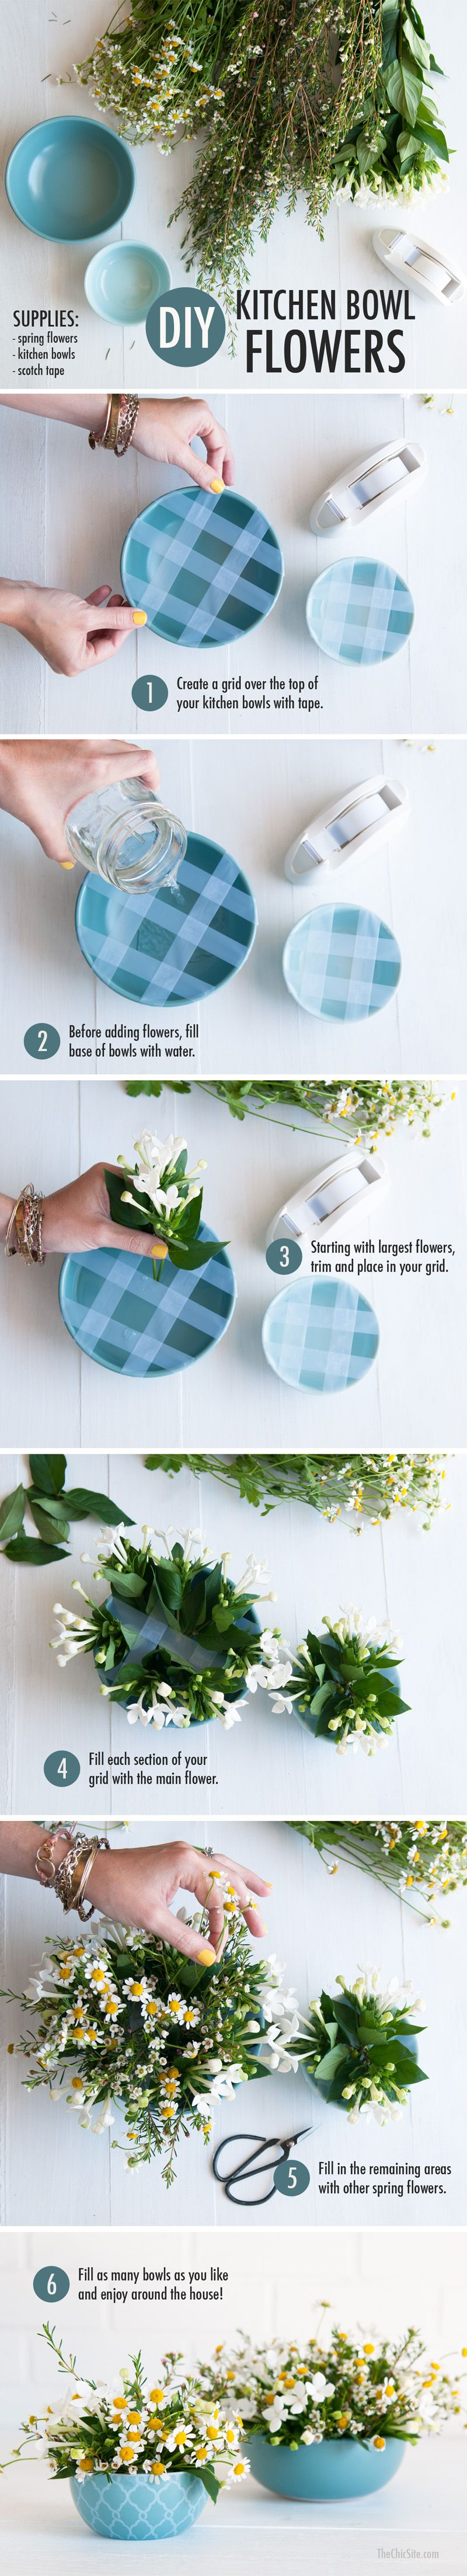 Flowers in a Kitchen Bowl | Bowls, Flower and Flower arrangements